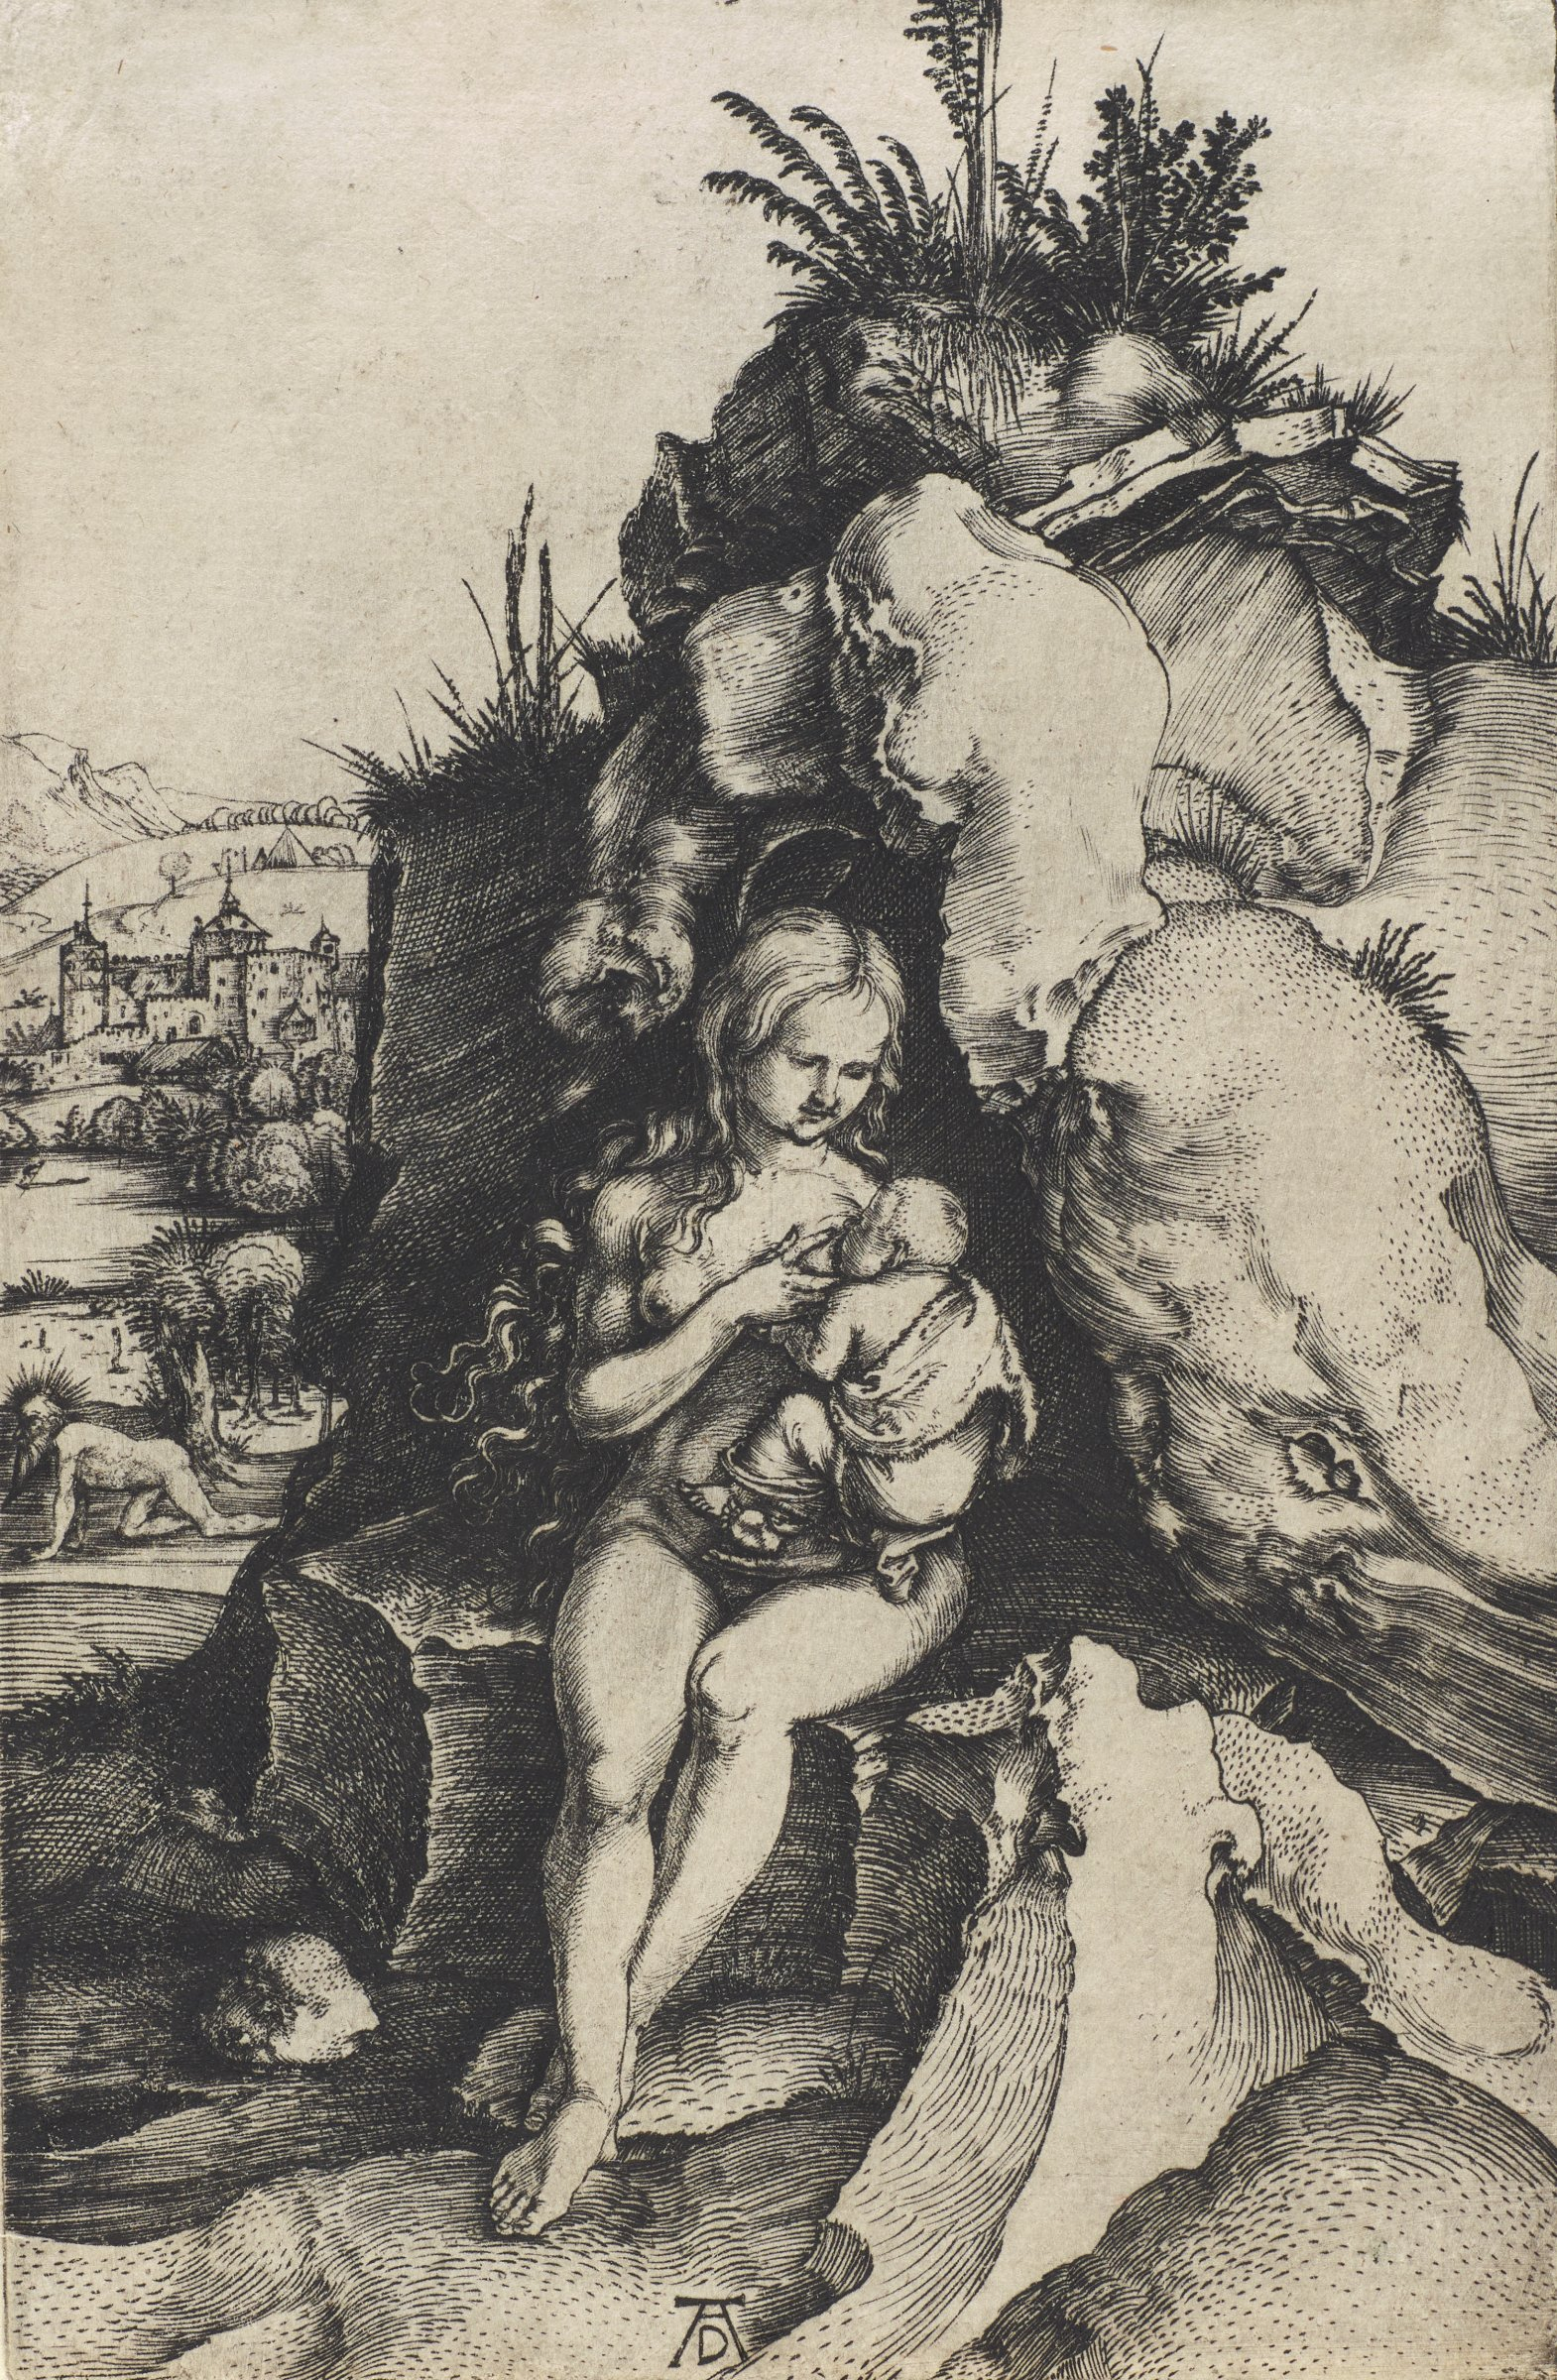 A nude mother nurses her infant child in the center of the composition. She sits on a rocky hillside. To the left of her a nude man crawls on his hands and knees. In the background is a town.